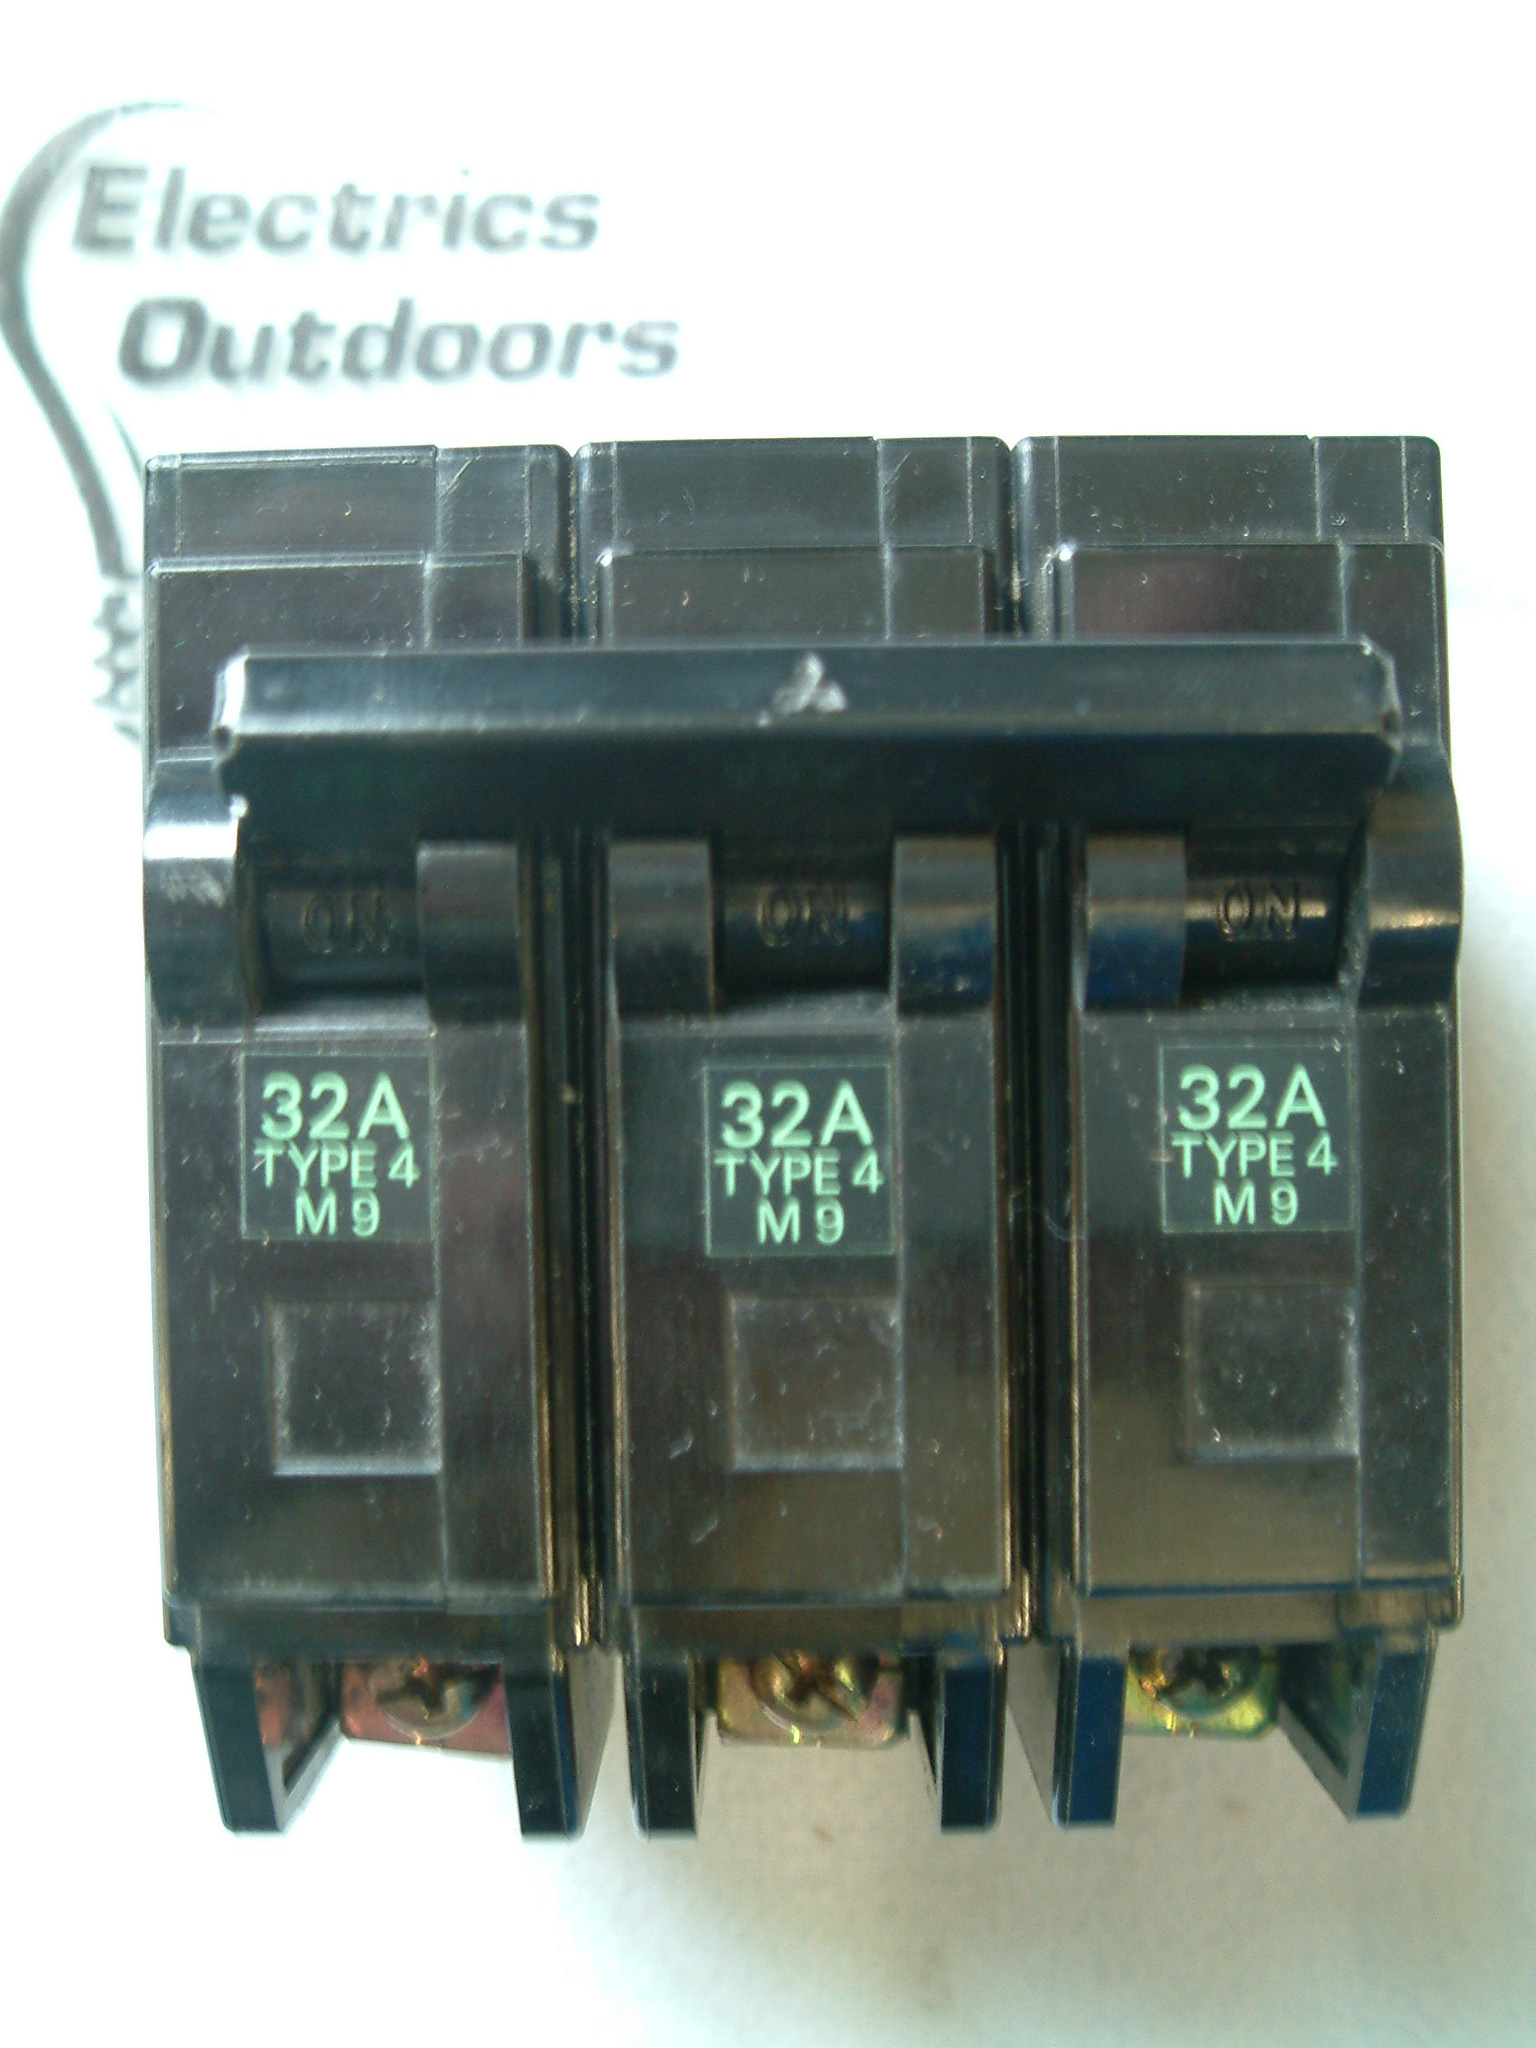 MITSUBISHI 32 AMP TYPE 4 M9 TRIPLE POLE MCB CIRCUIT BREAKER 240/